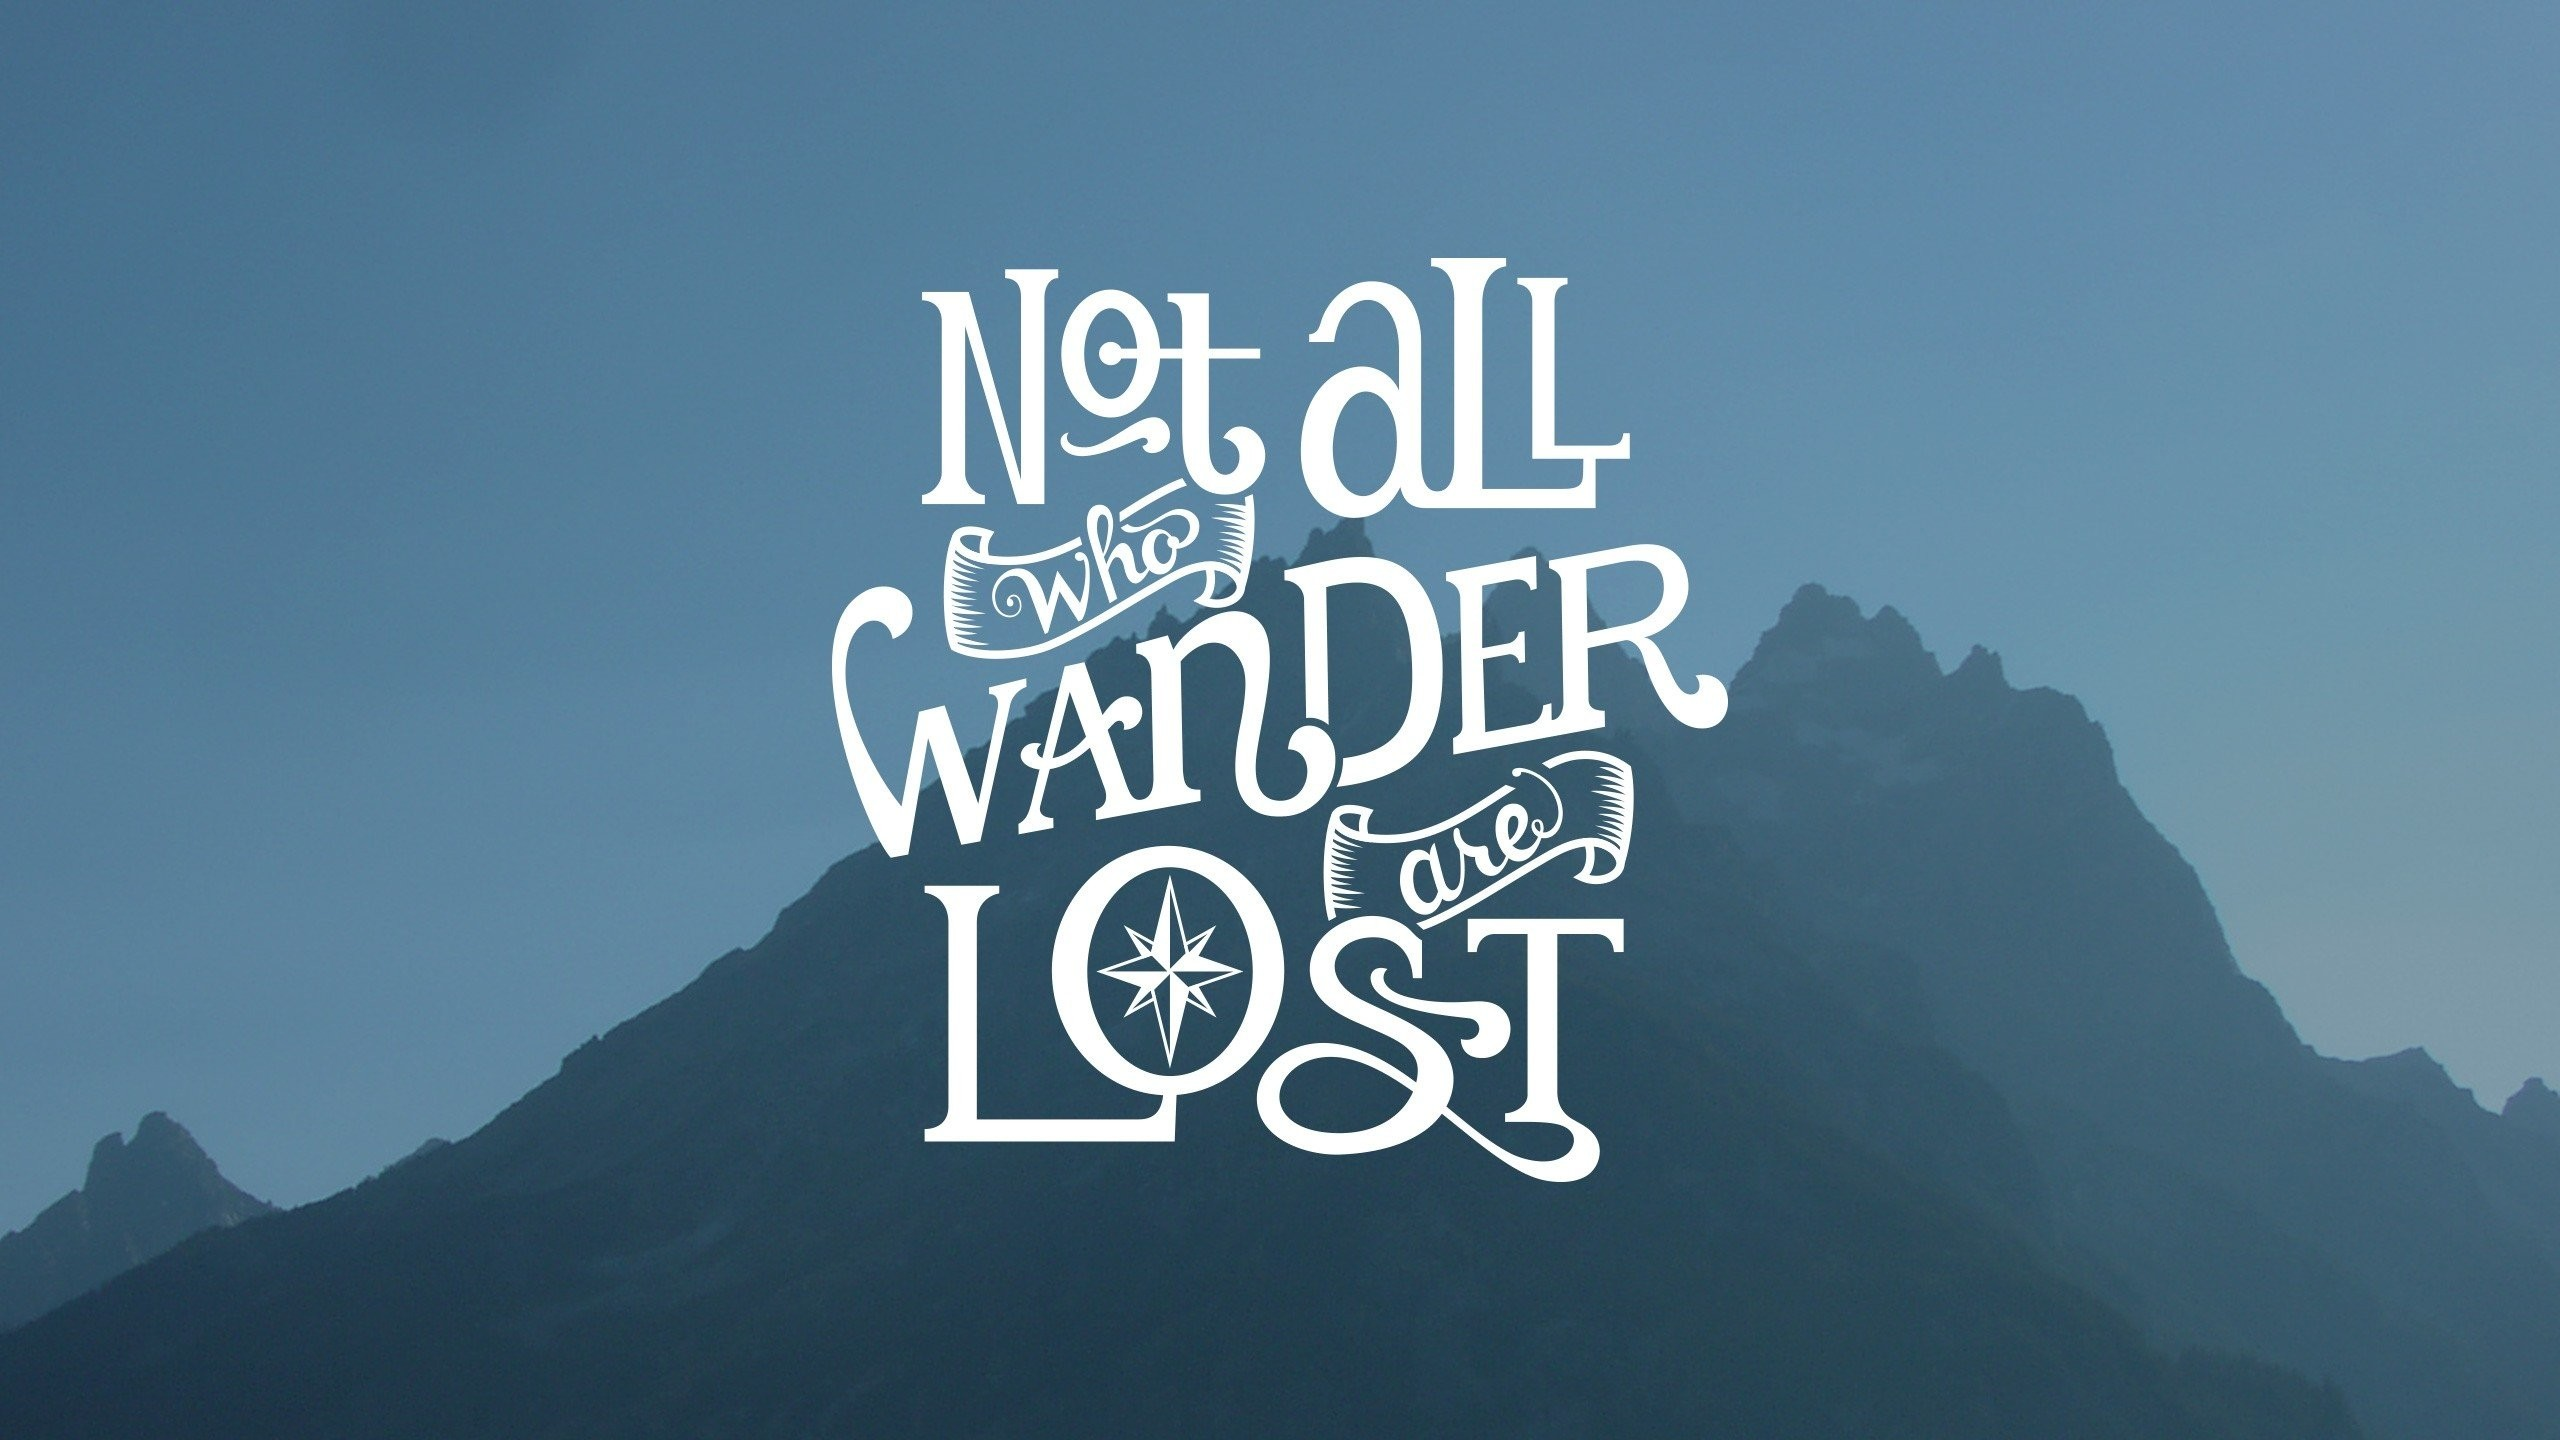 Lord Of The Rings Quotes Wallpapers For Android For Desktop Wallpaper